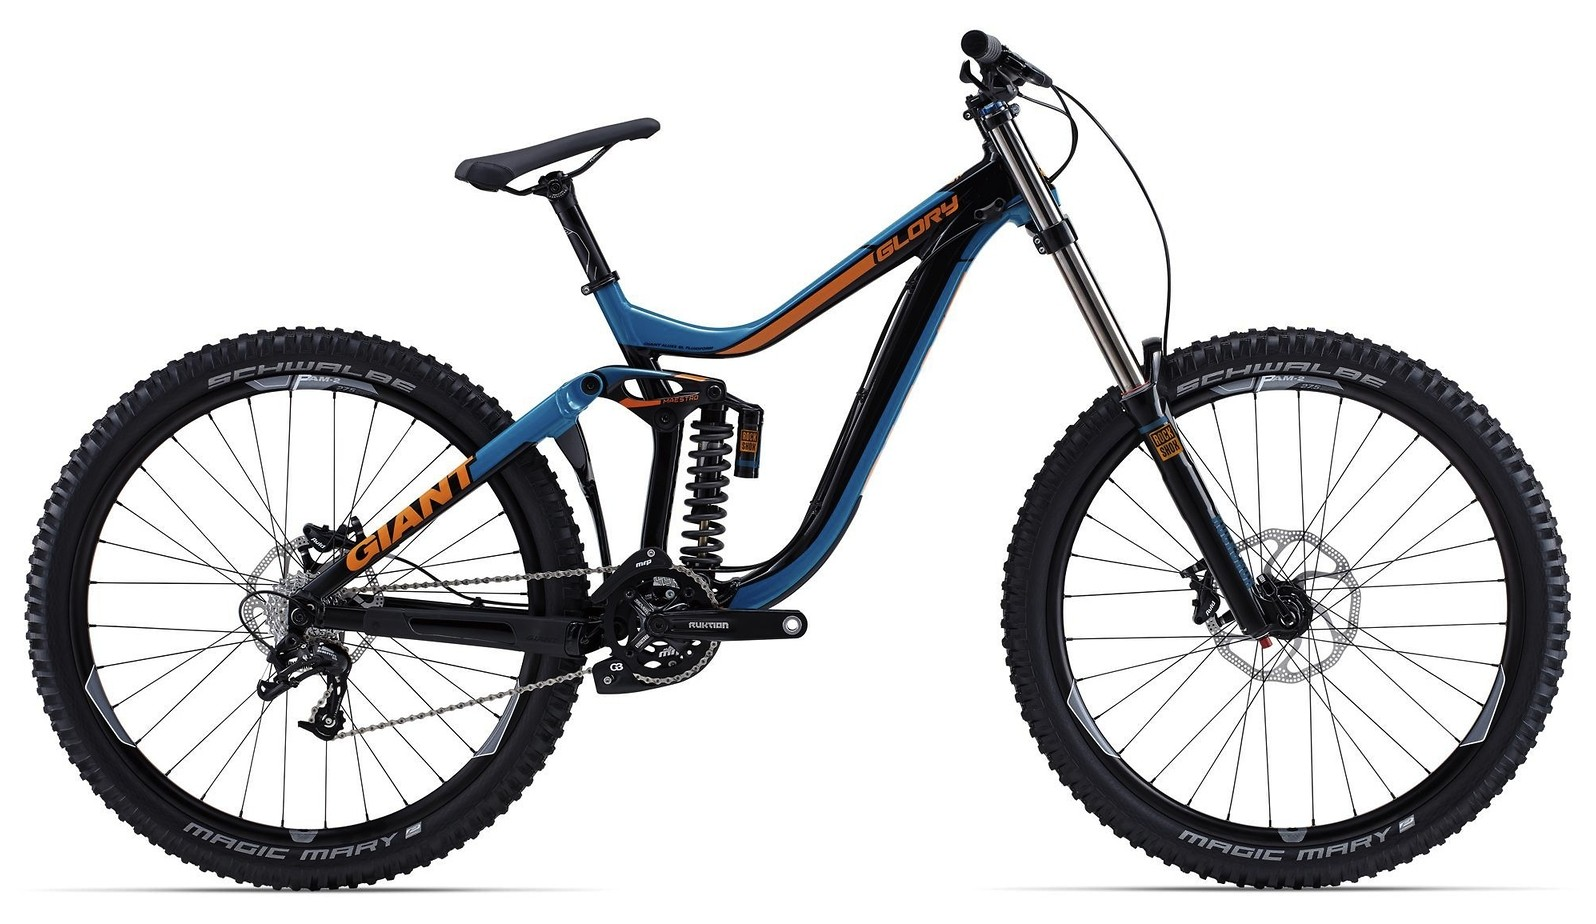 2015 Giant Glory 27.5 2 bike